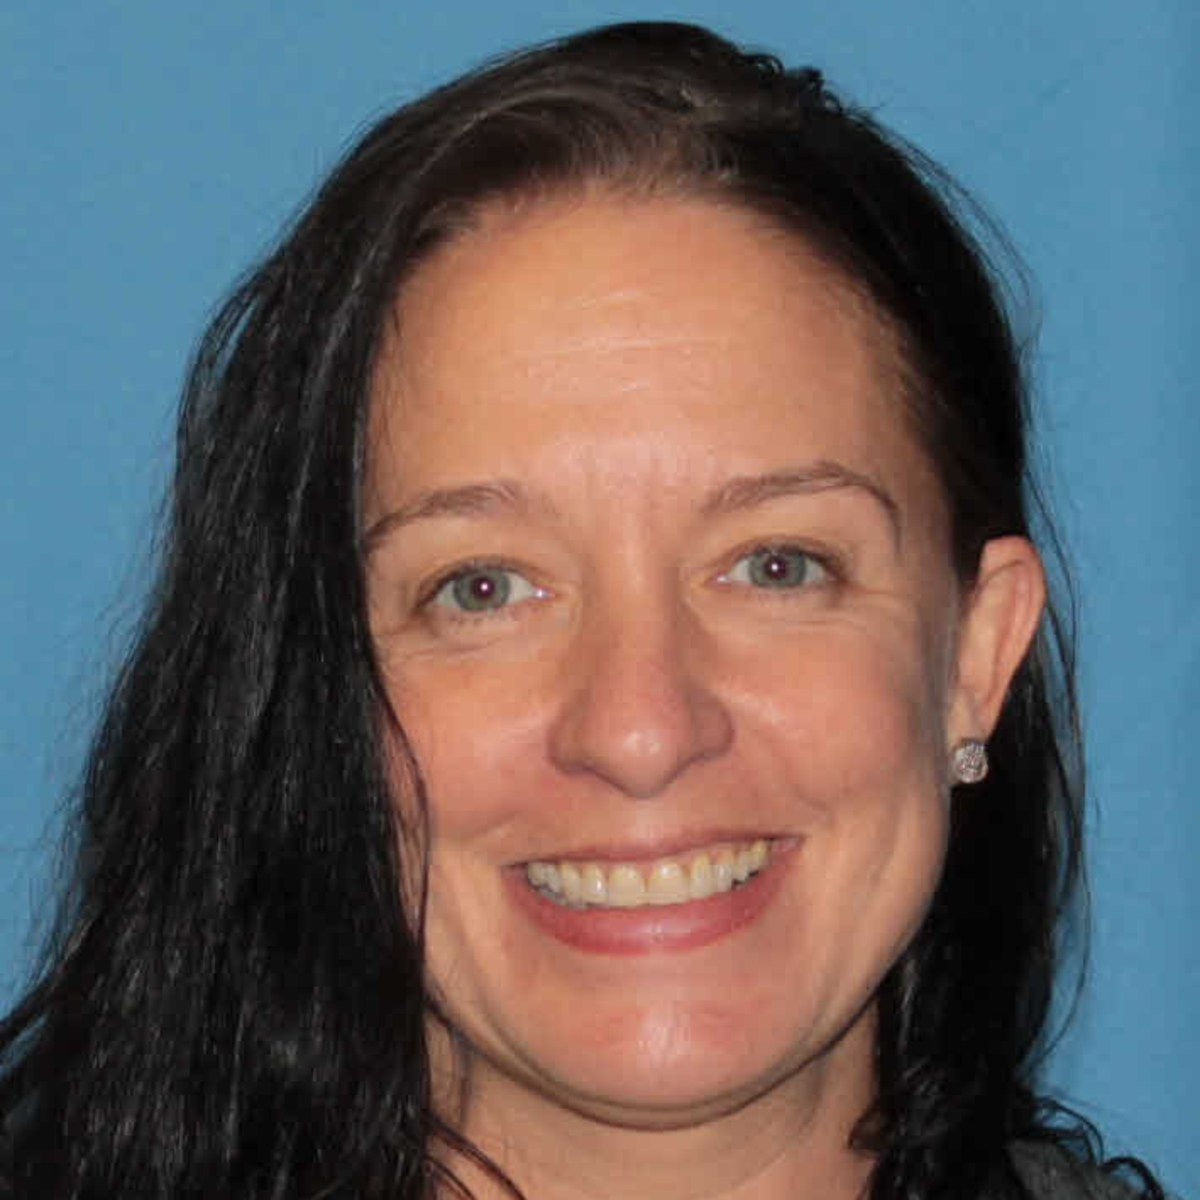 staff directory navarro elementary school stacie galli s profile photo